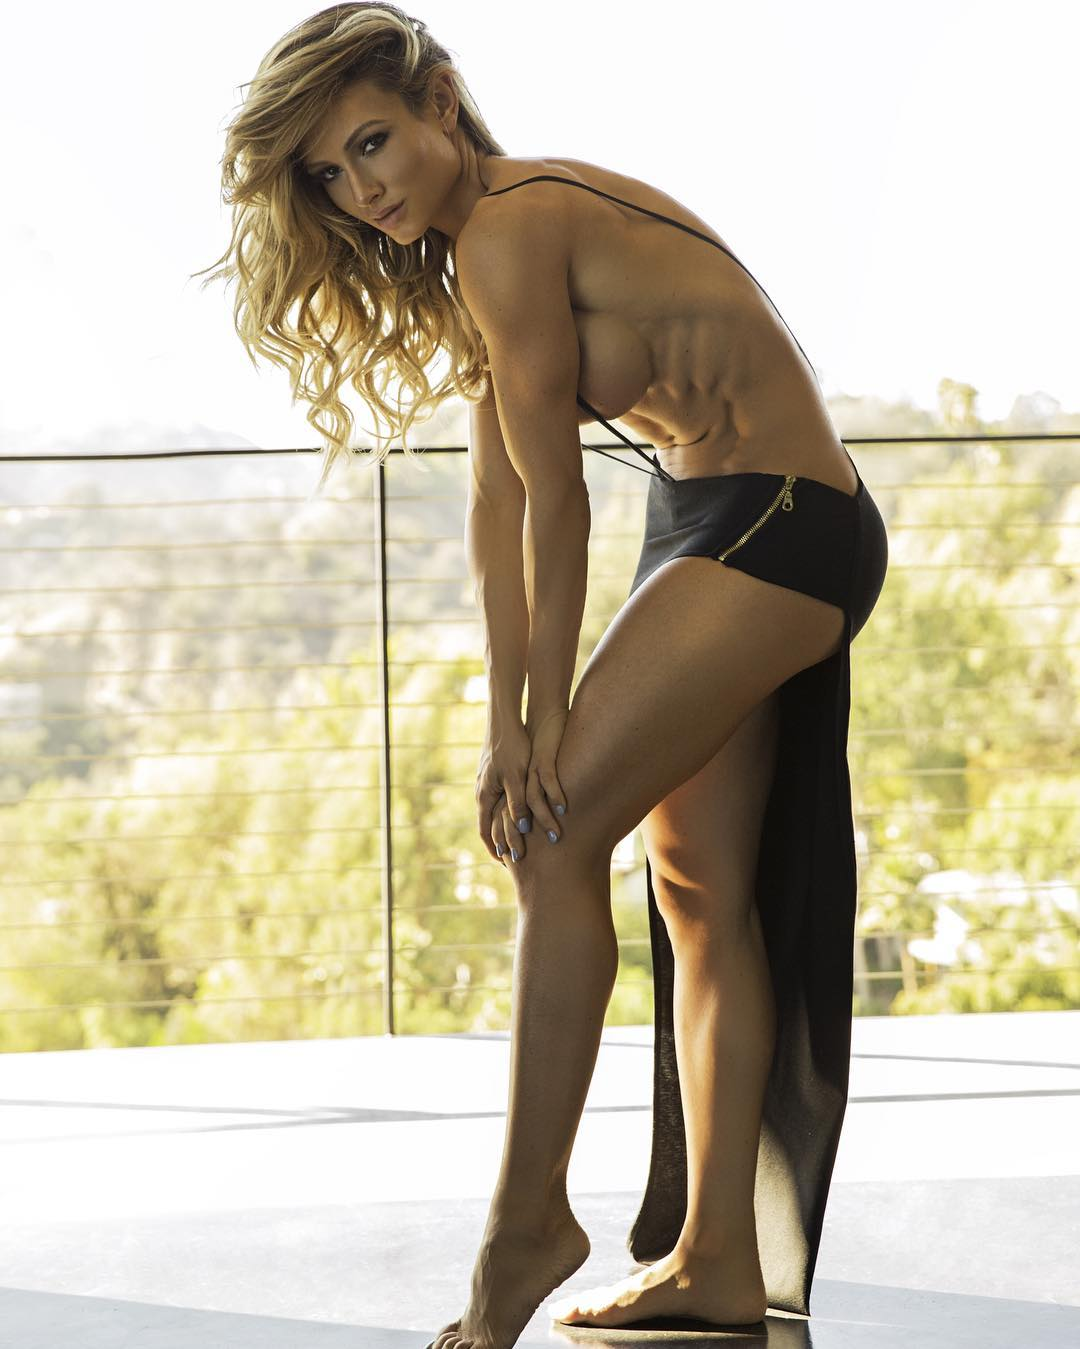 Very paige hathaway nude